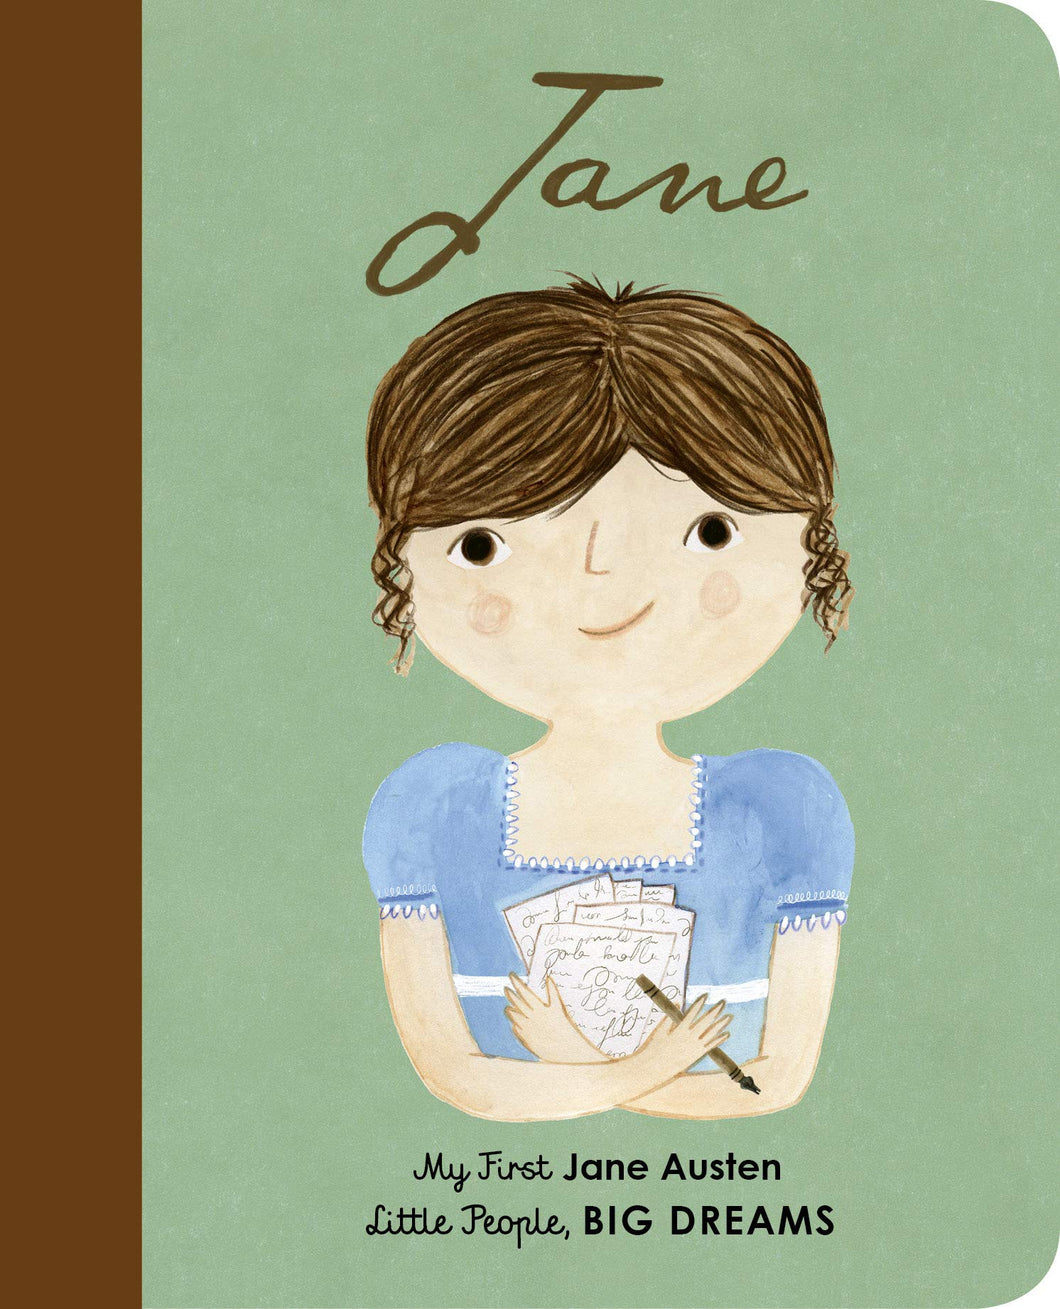 Little People Big Dreams - Jane Austen